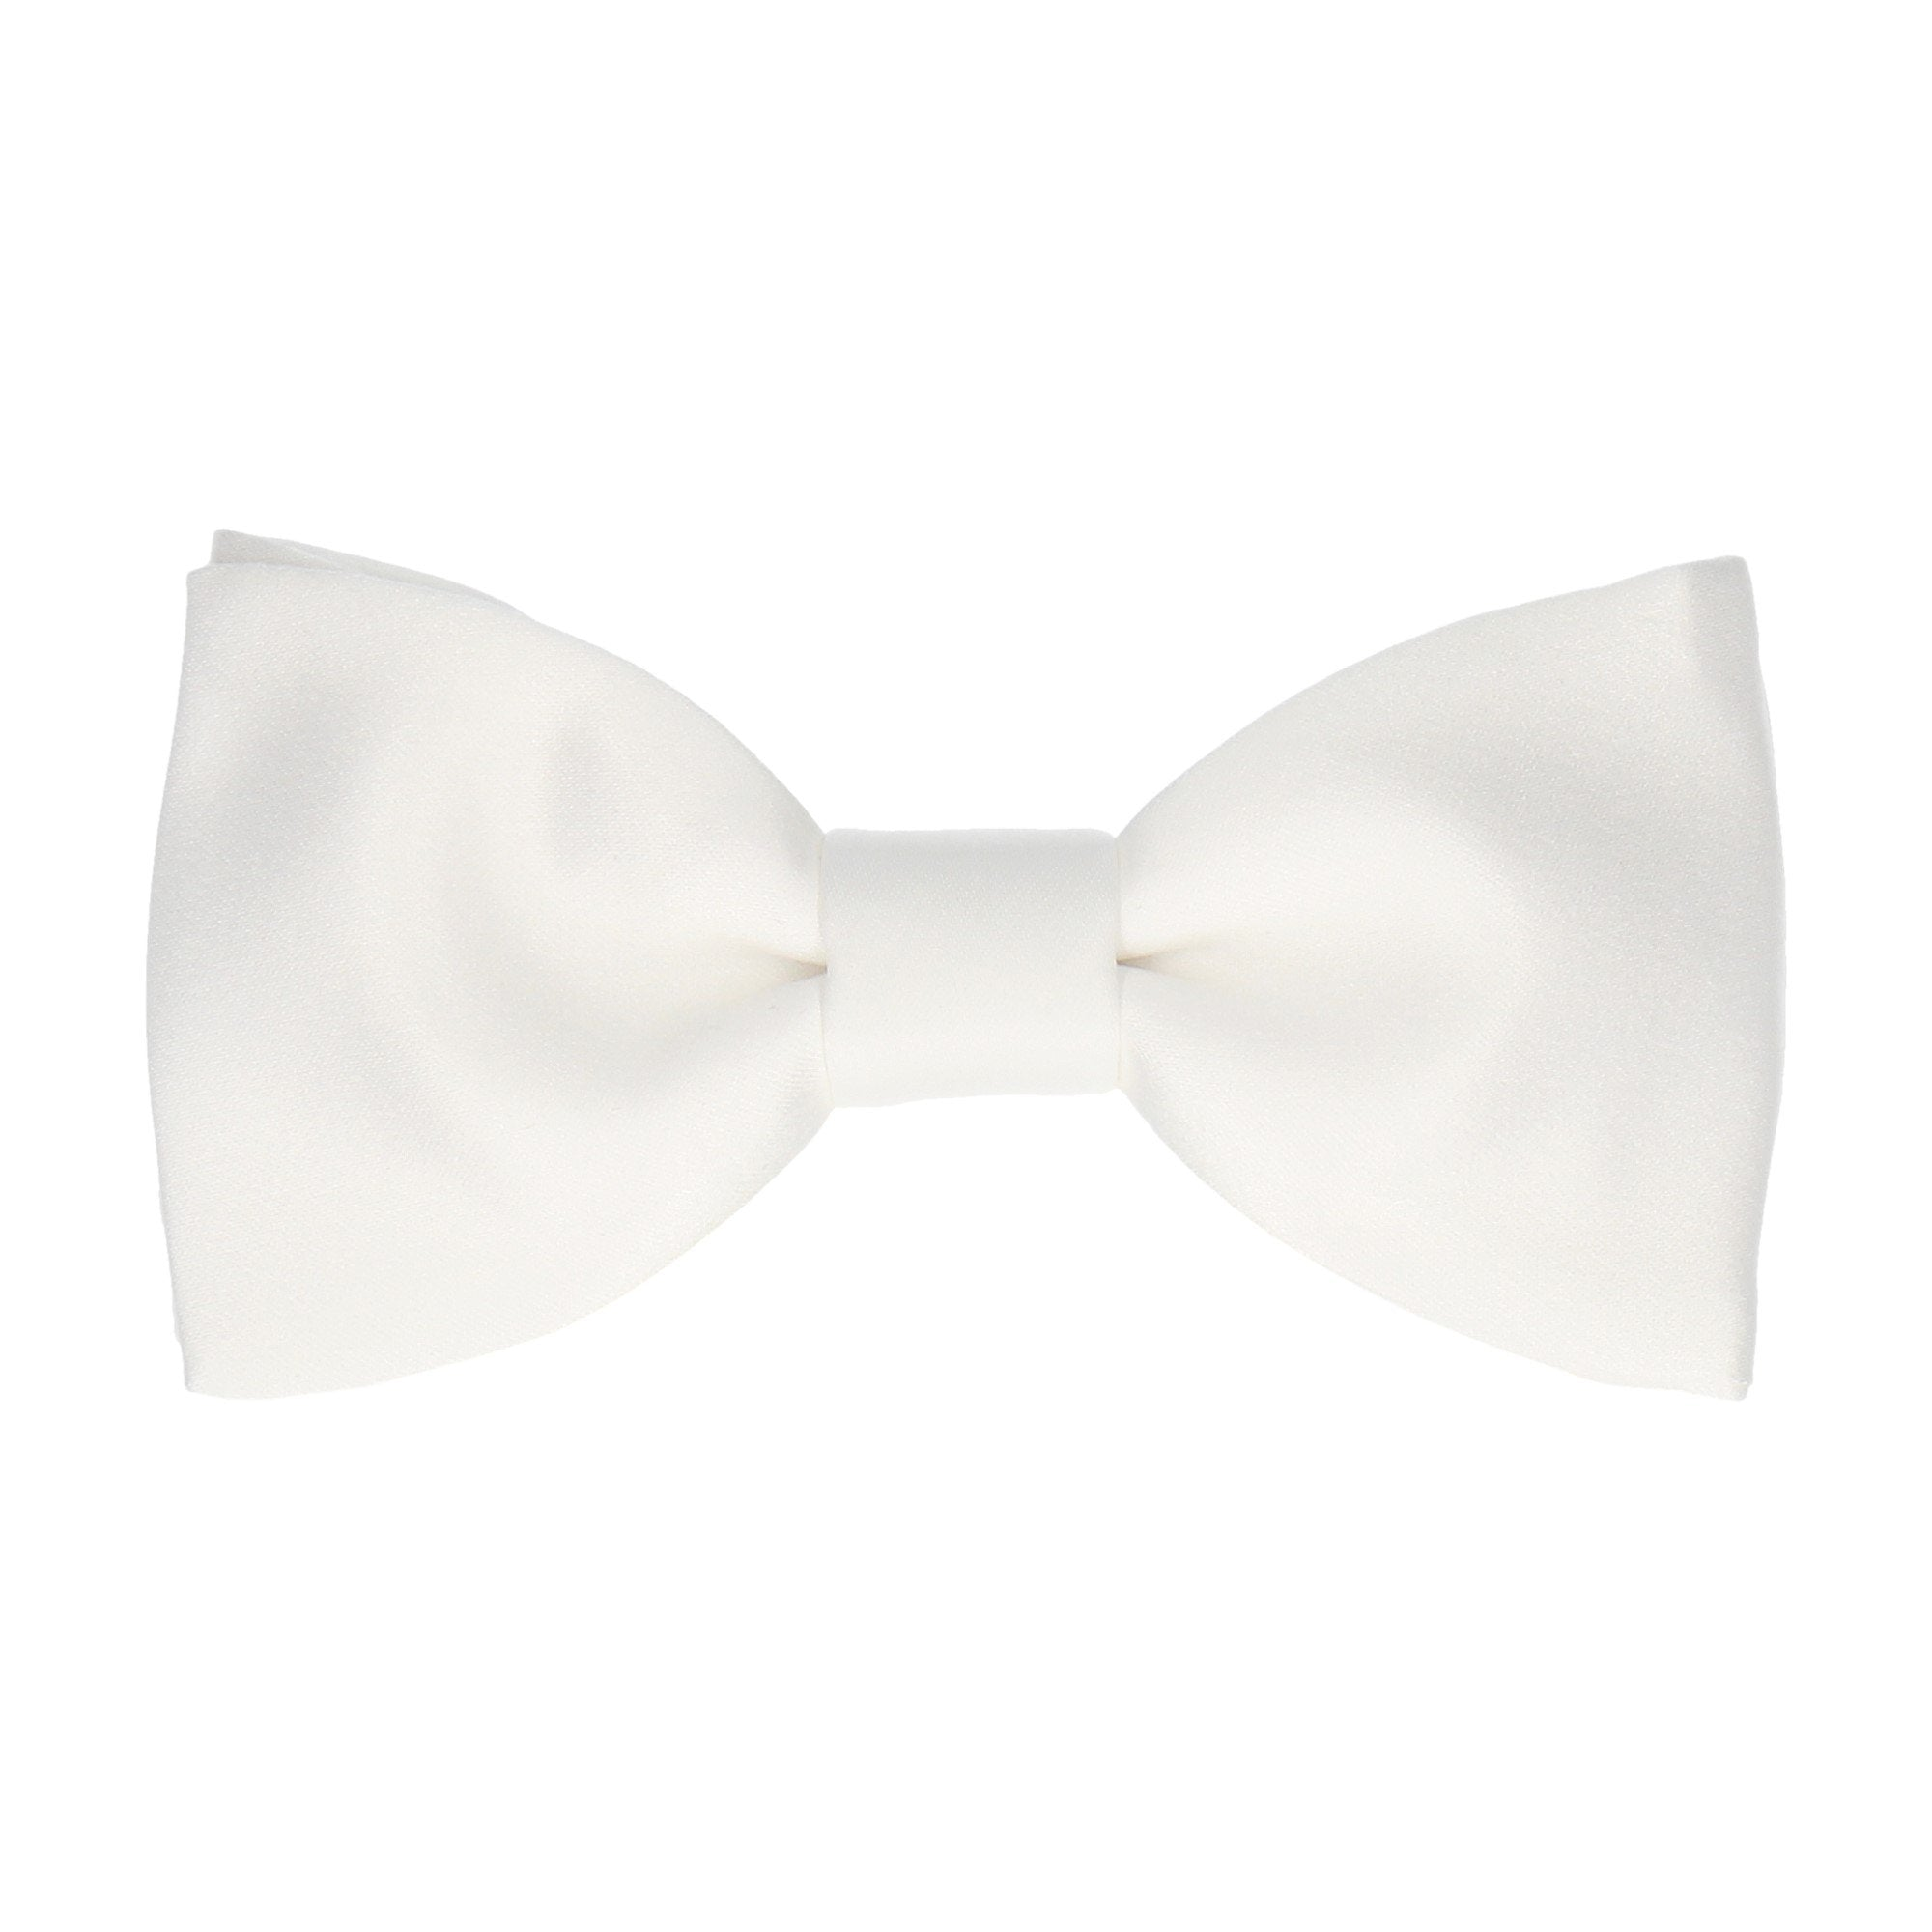 Satin in White Bow Tie